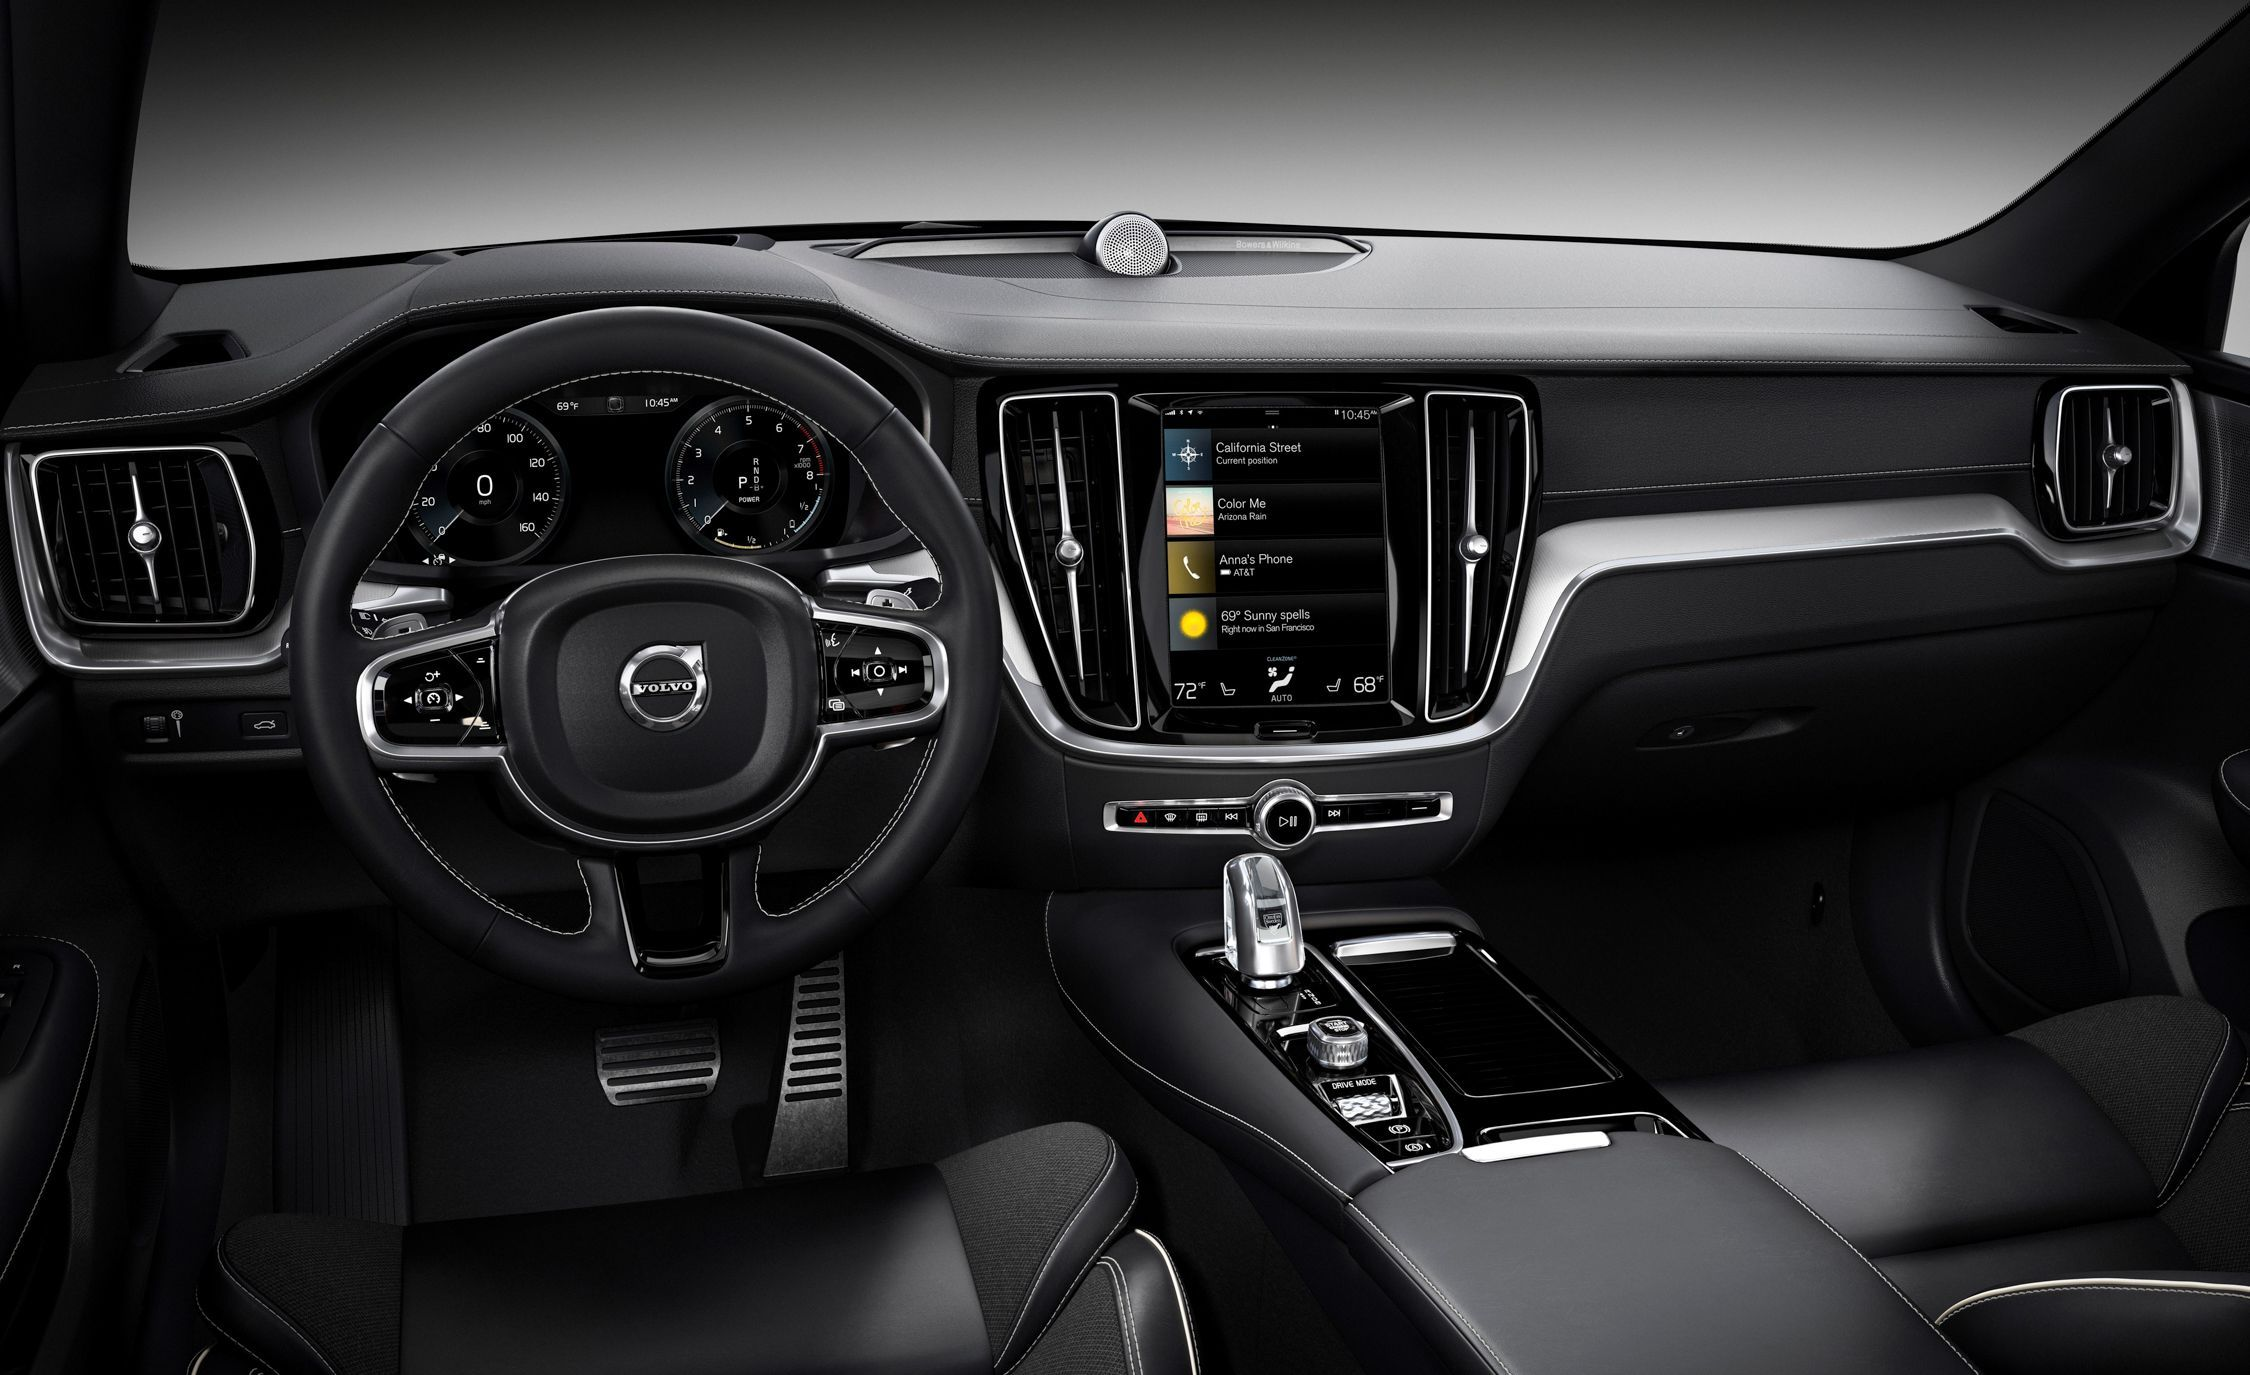 the polestar tuned 2019 volvo s60 is going to be extremely rare rh caranddriver com volvo s60 awd manual transmission volvo s60 manual transmission for sale